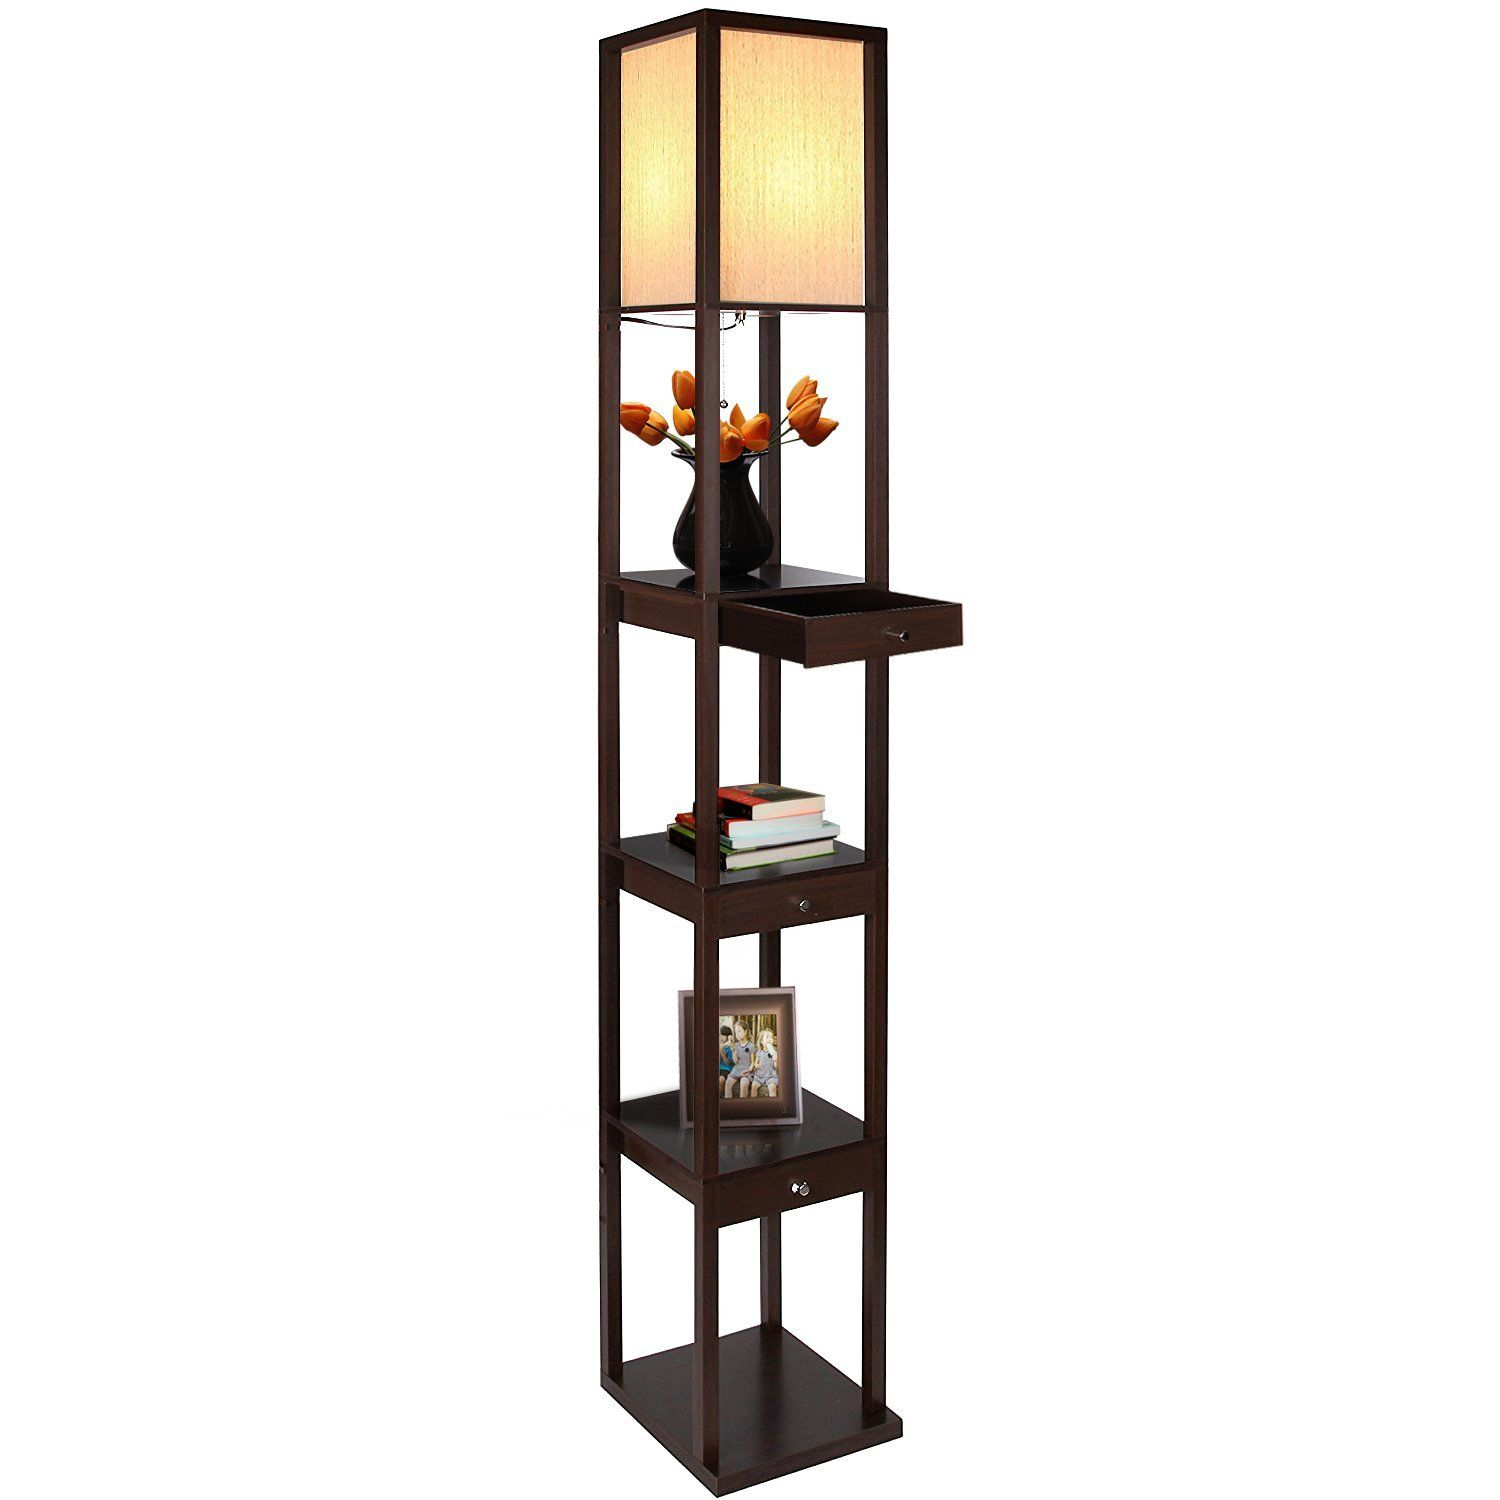 Brightech Maxwell LED Drawer Edition Shelf Floor Lamp